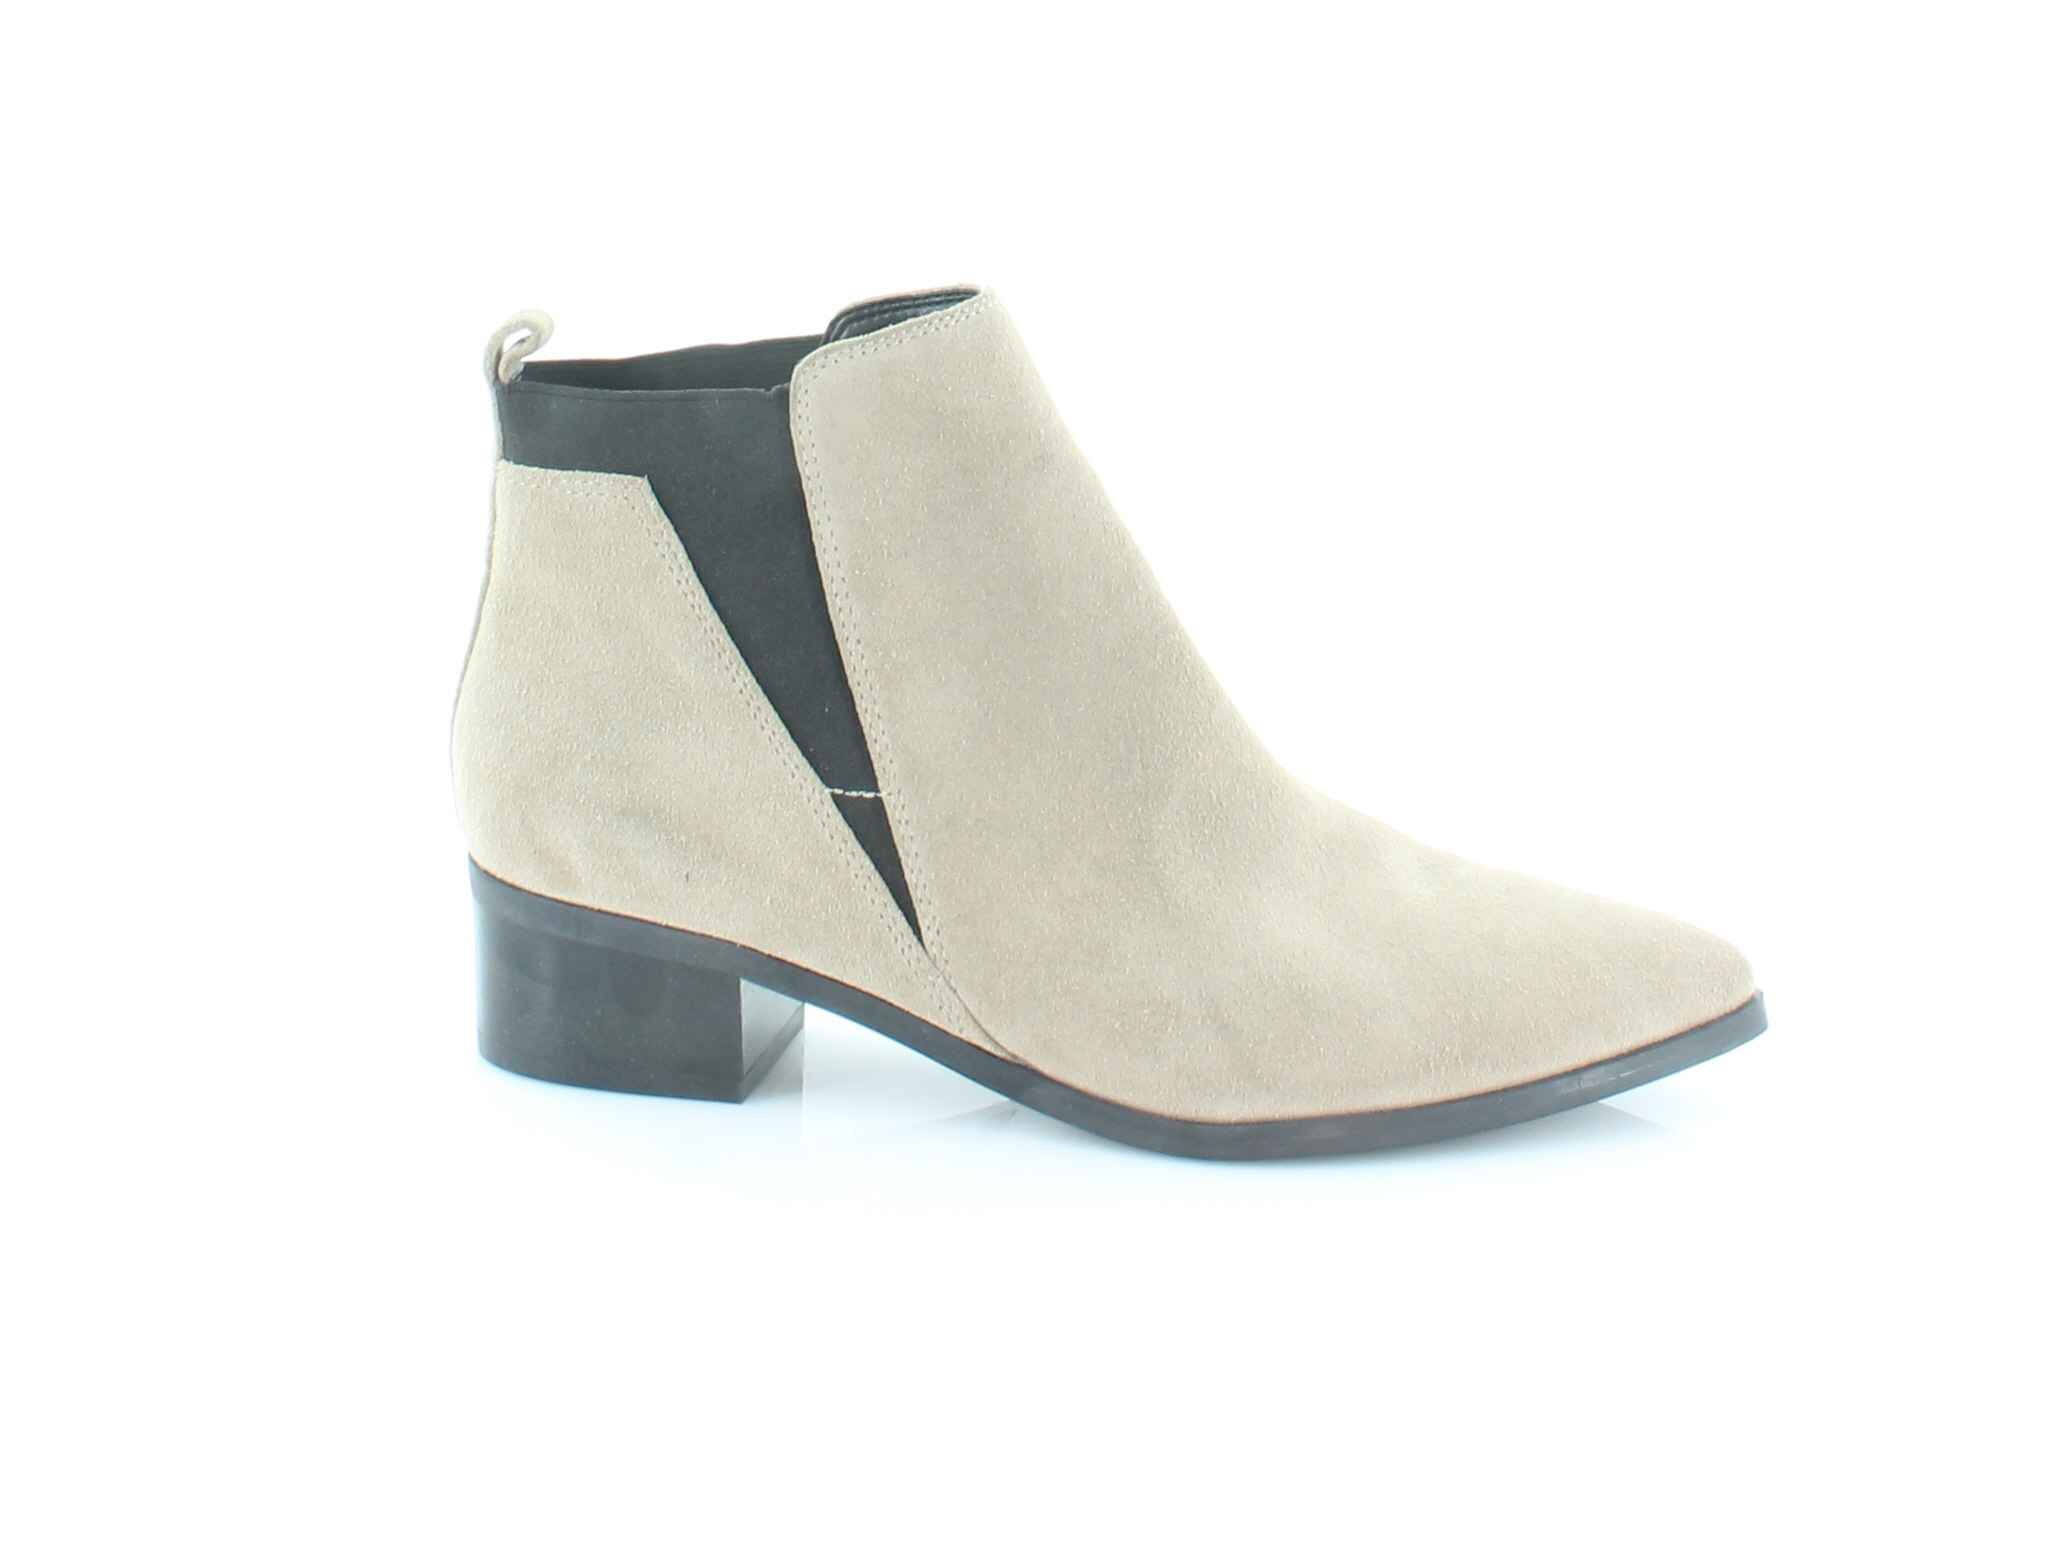 Marc Fisher Ignite Women's Boots Natural Size 8 M